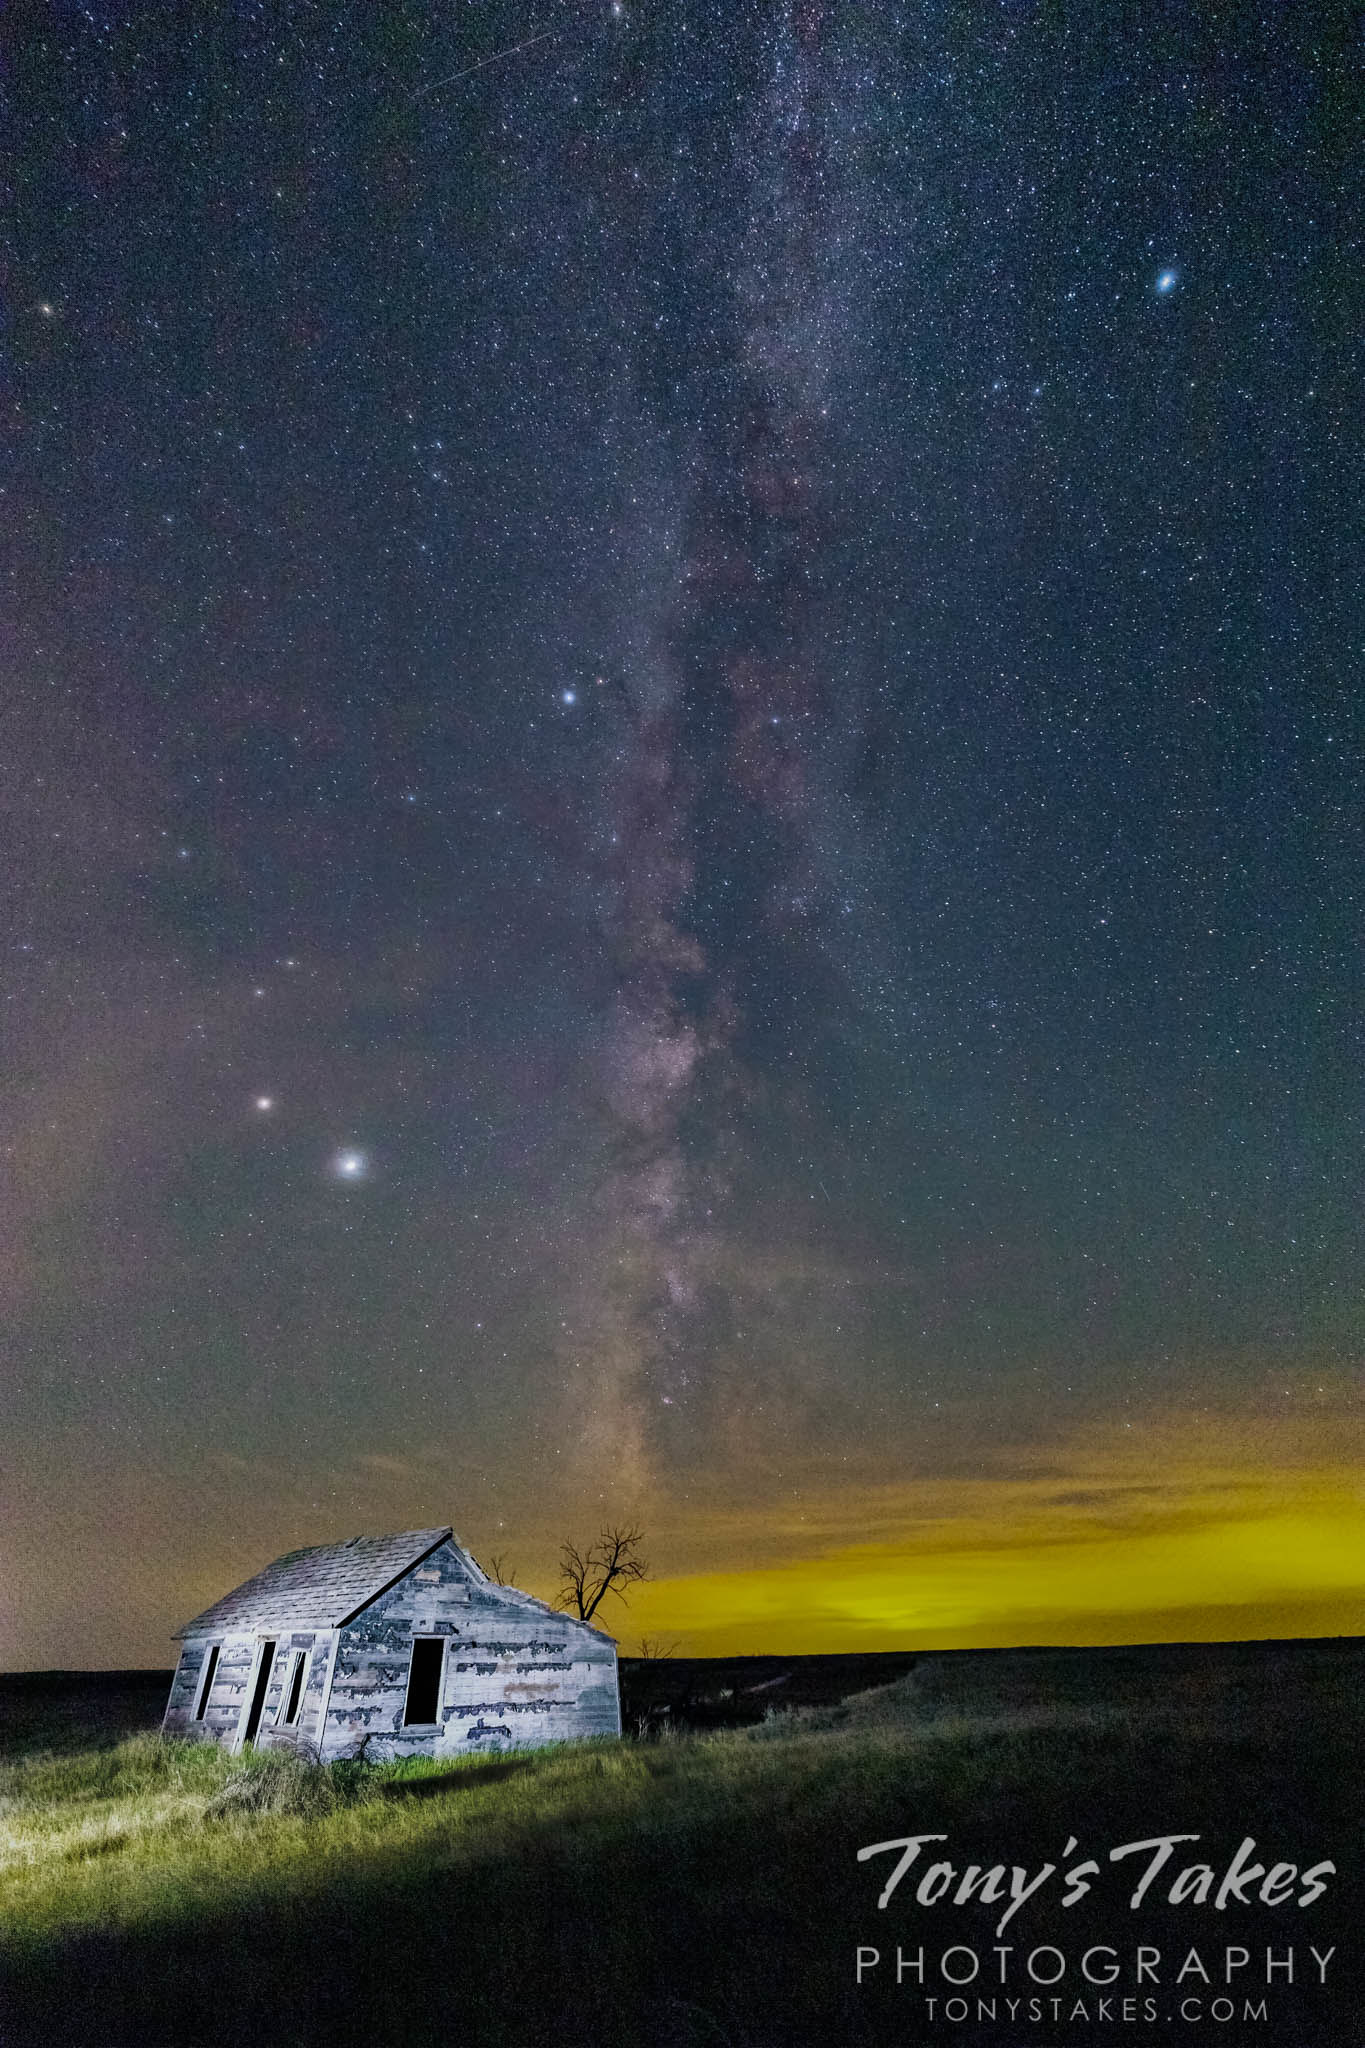 The Milky Way galaxy over an old farm house – with some bonuses